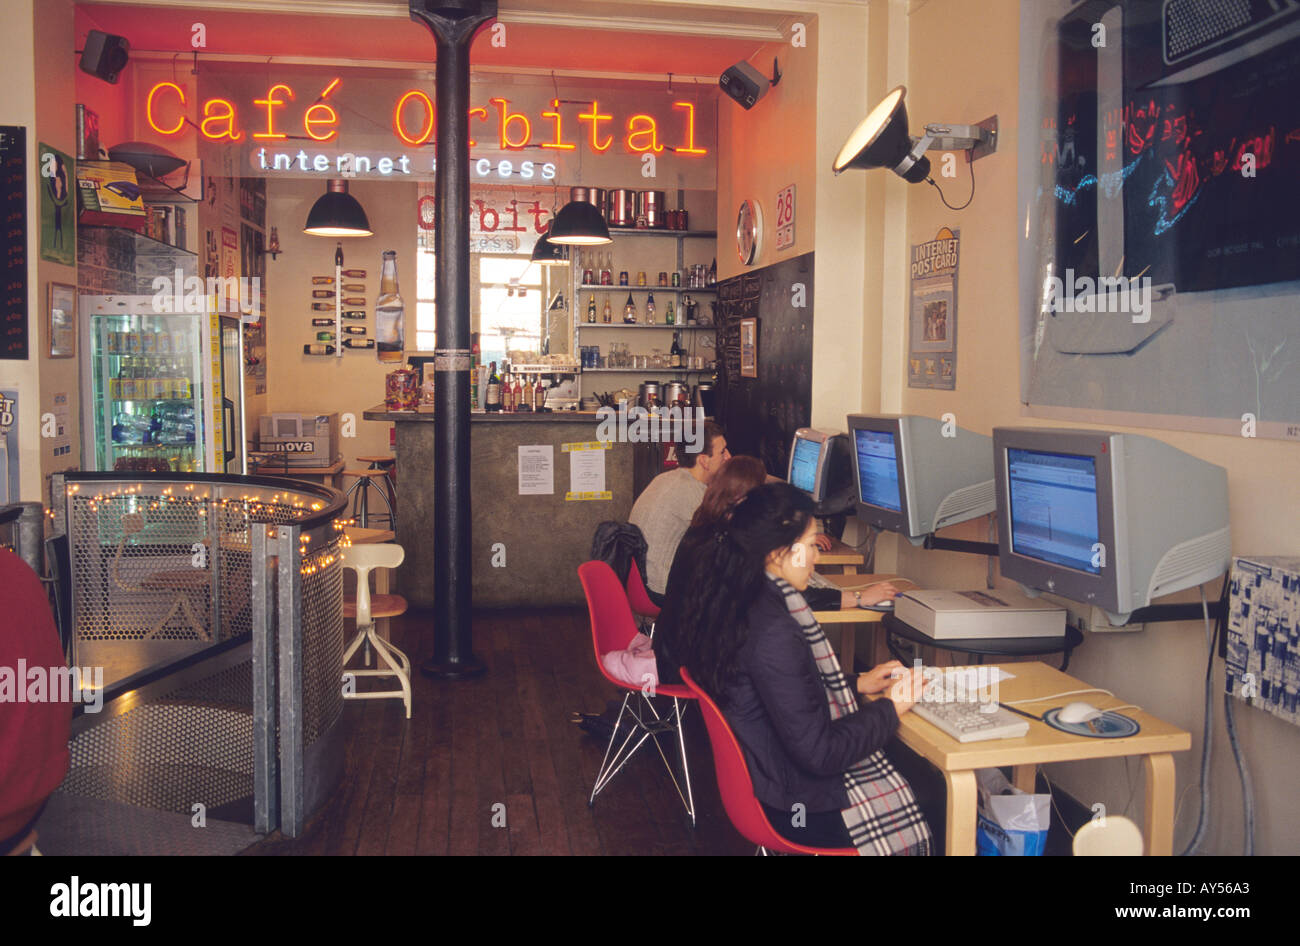 Internet Cafe Paris France